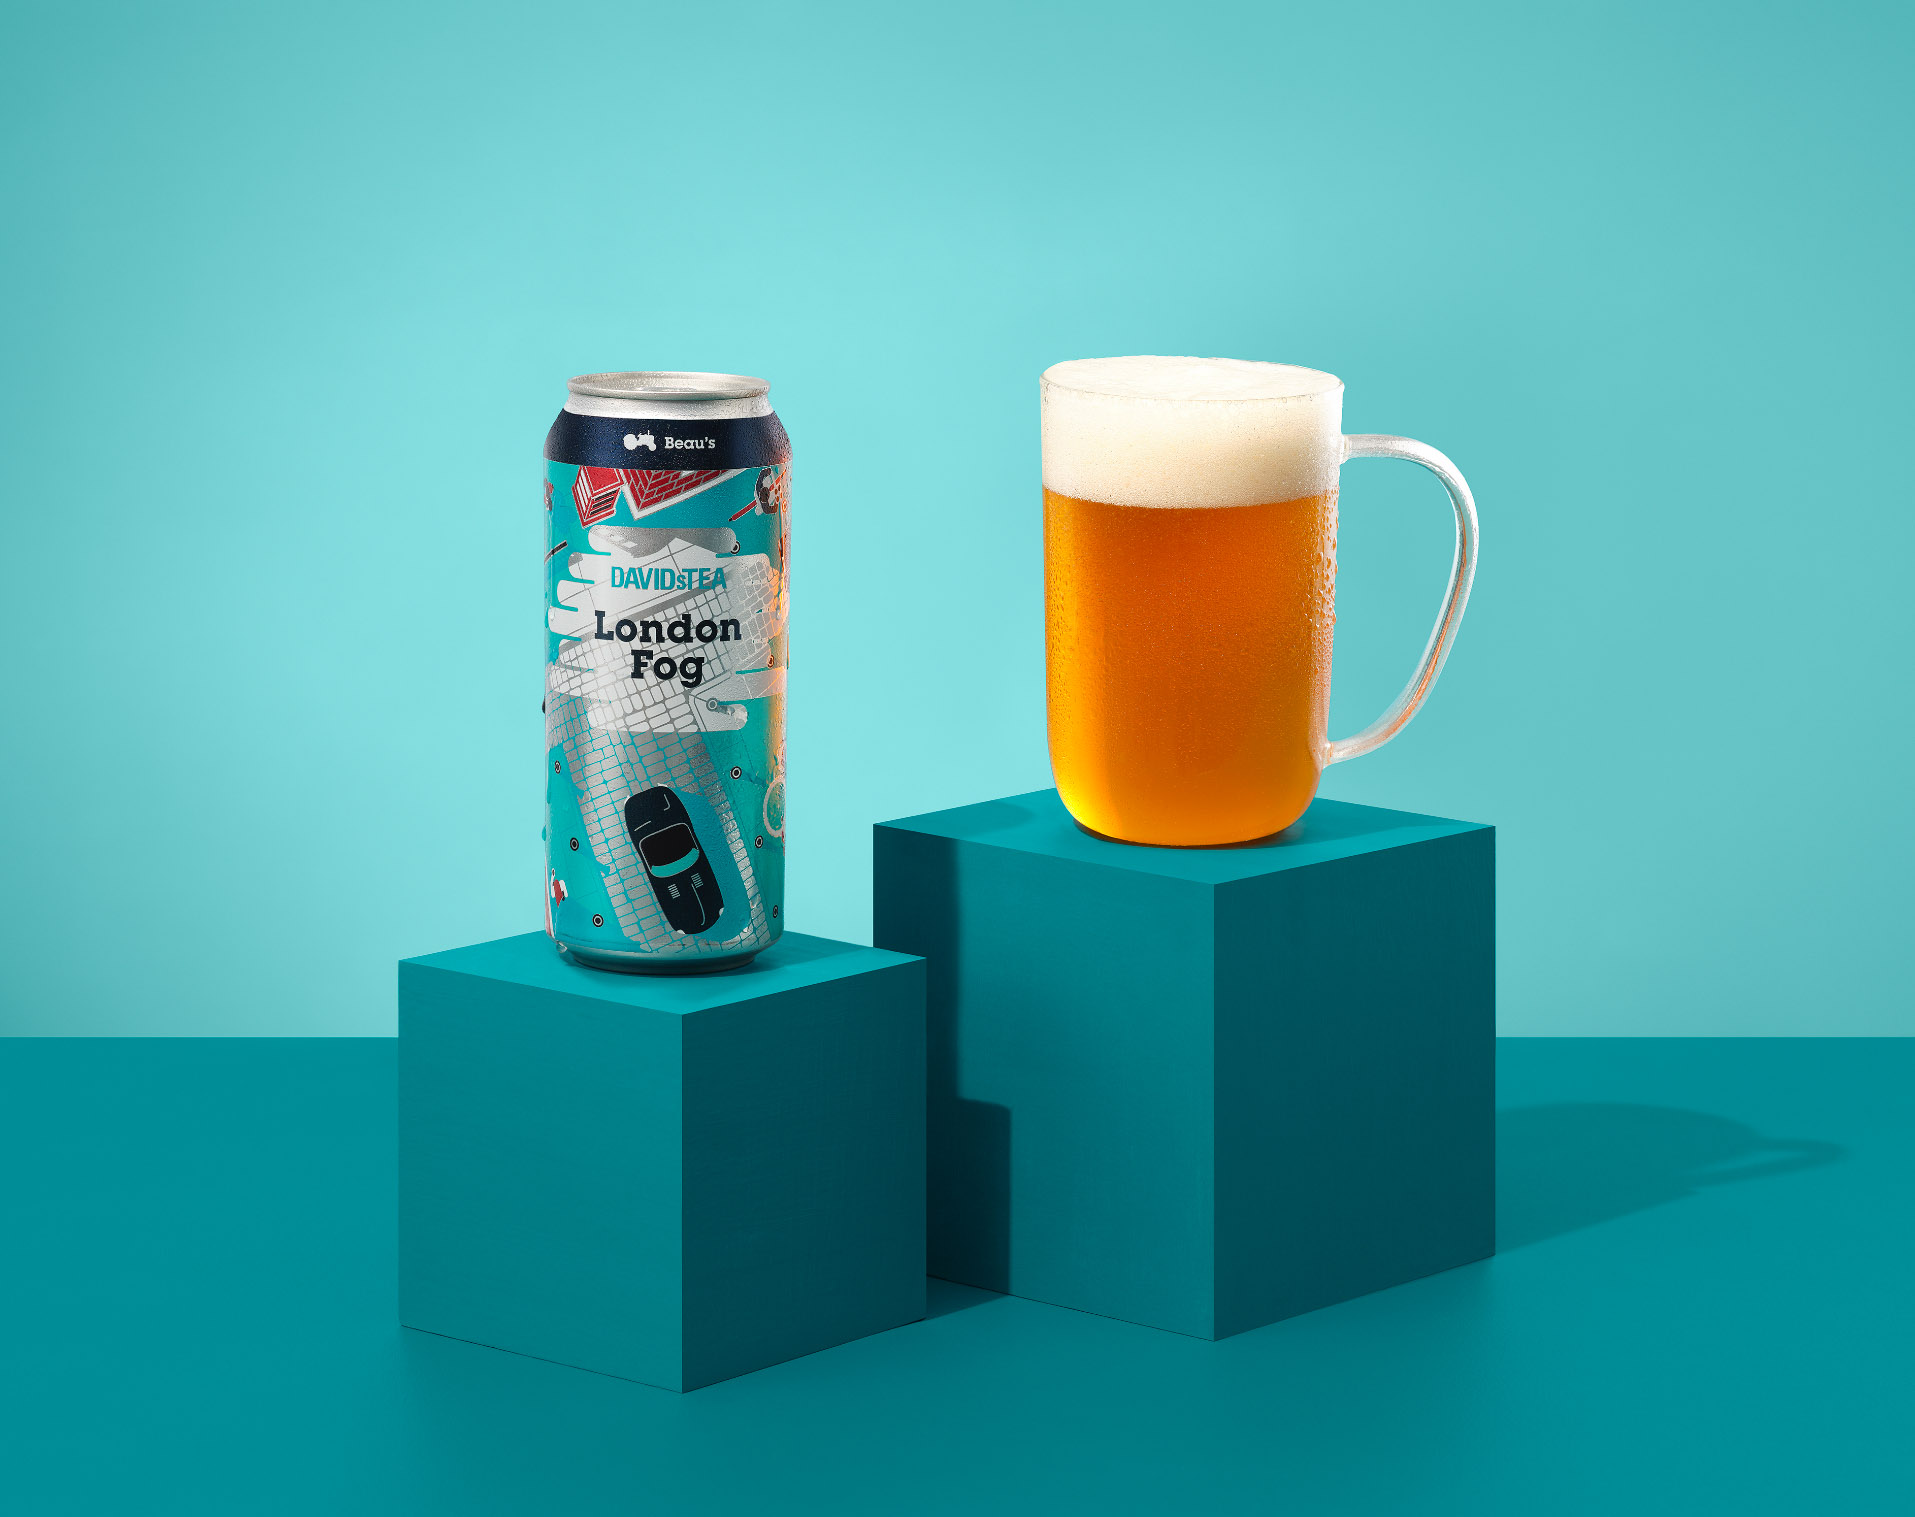 Two cans of DAVIDsTEA x Beau's London Fog (one laid horizontally on the side and the other is set on a turquoise block) with a clear mug filled with London Fog beer.